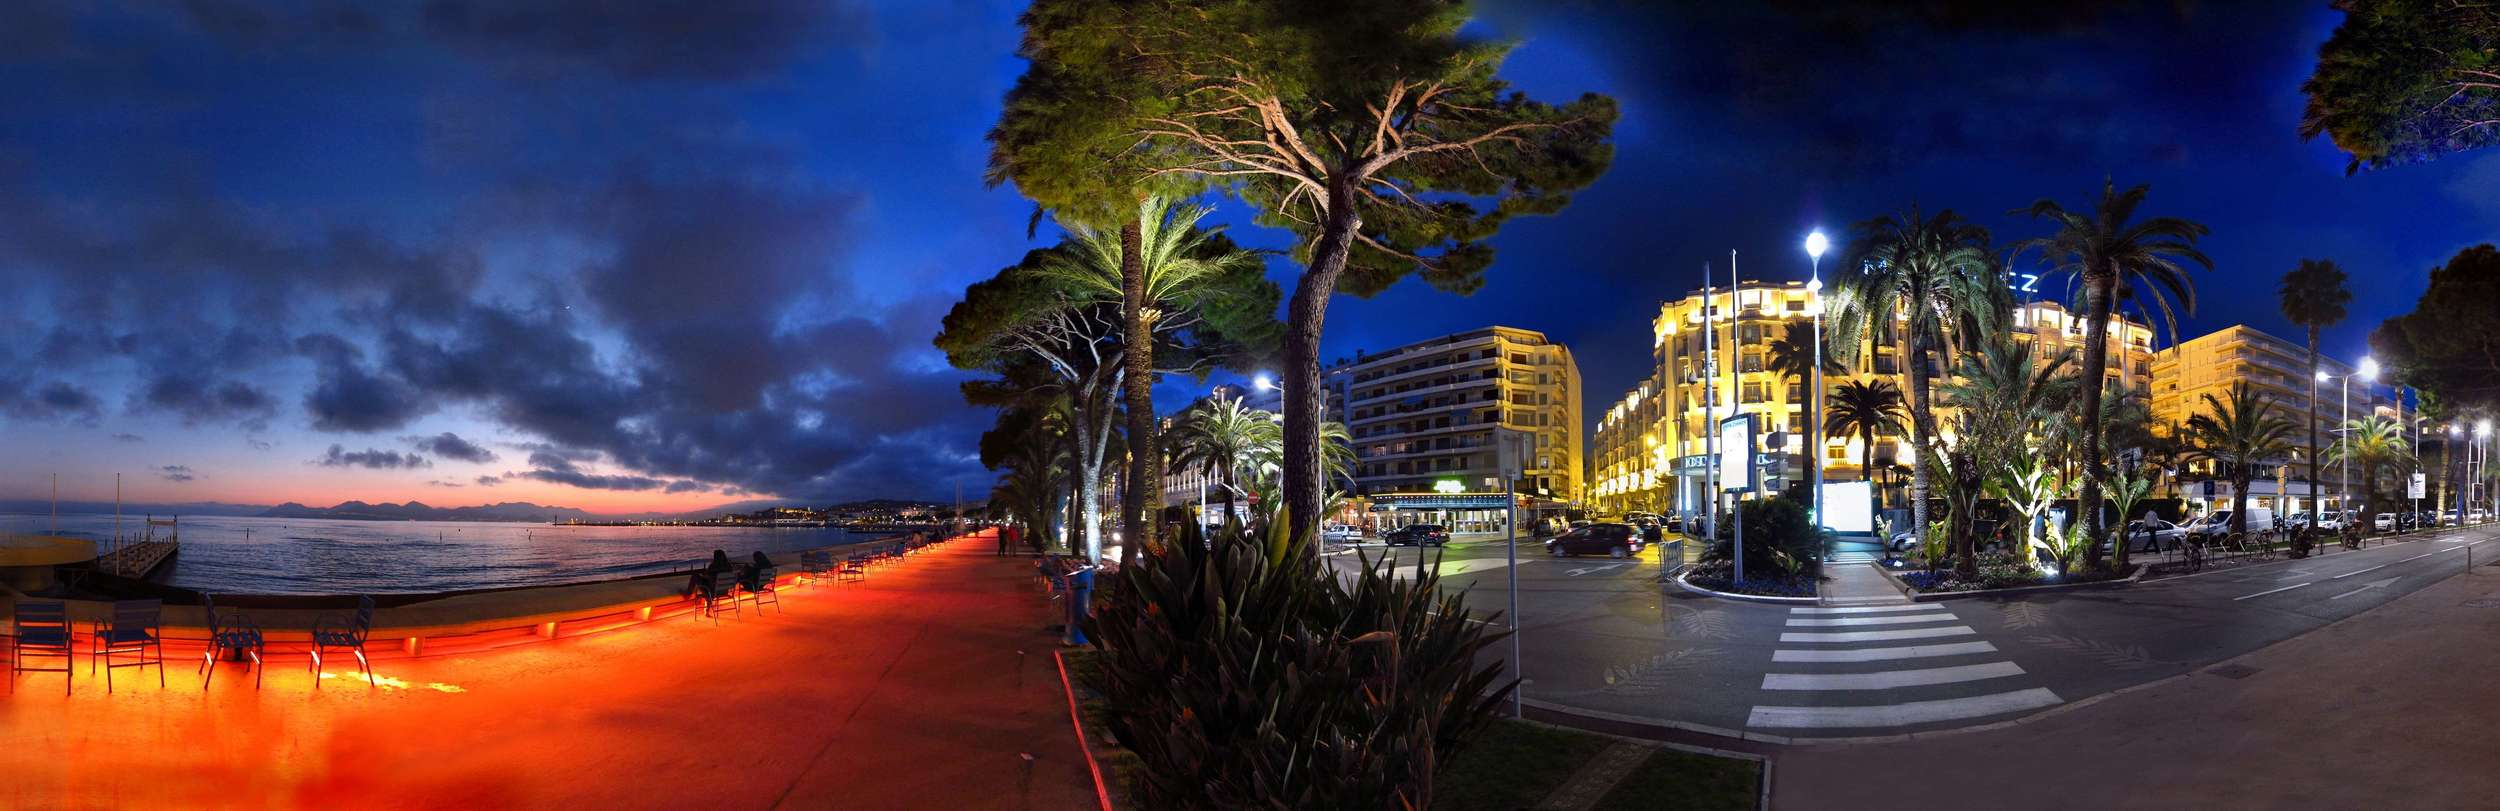 Panorama stiched from about 20 photographs taken 2012 in Cannes, France.